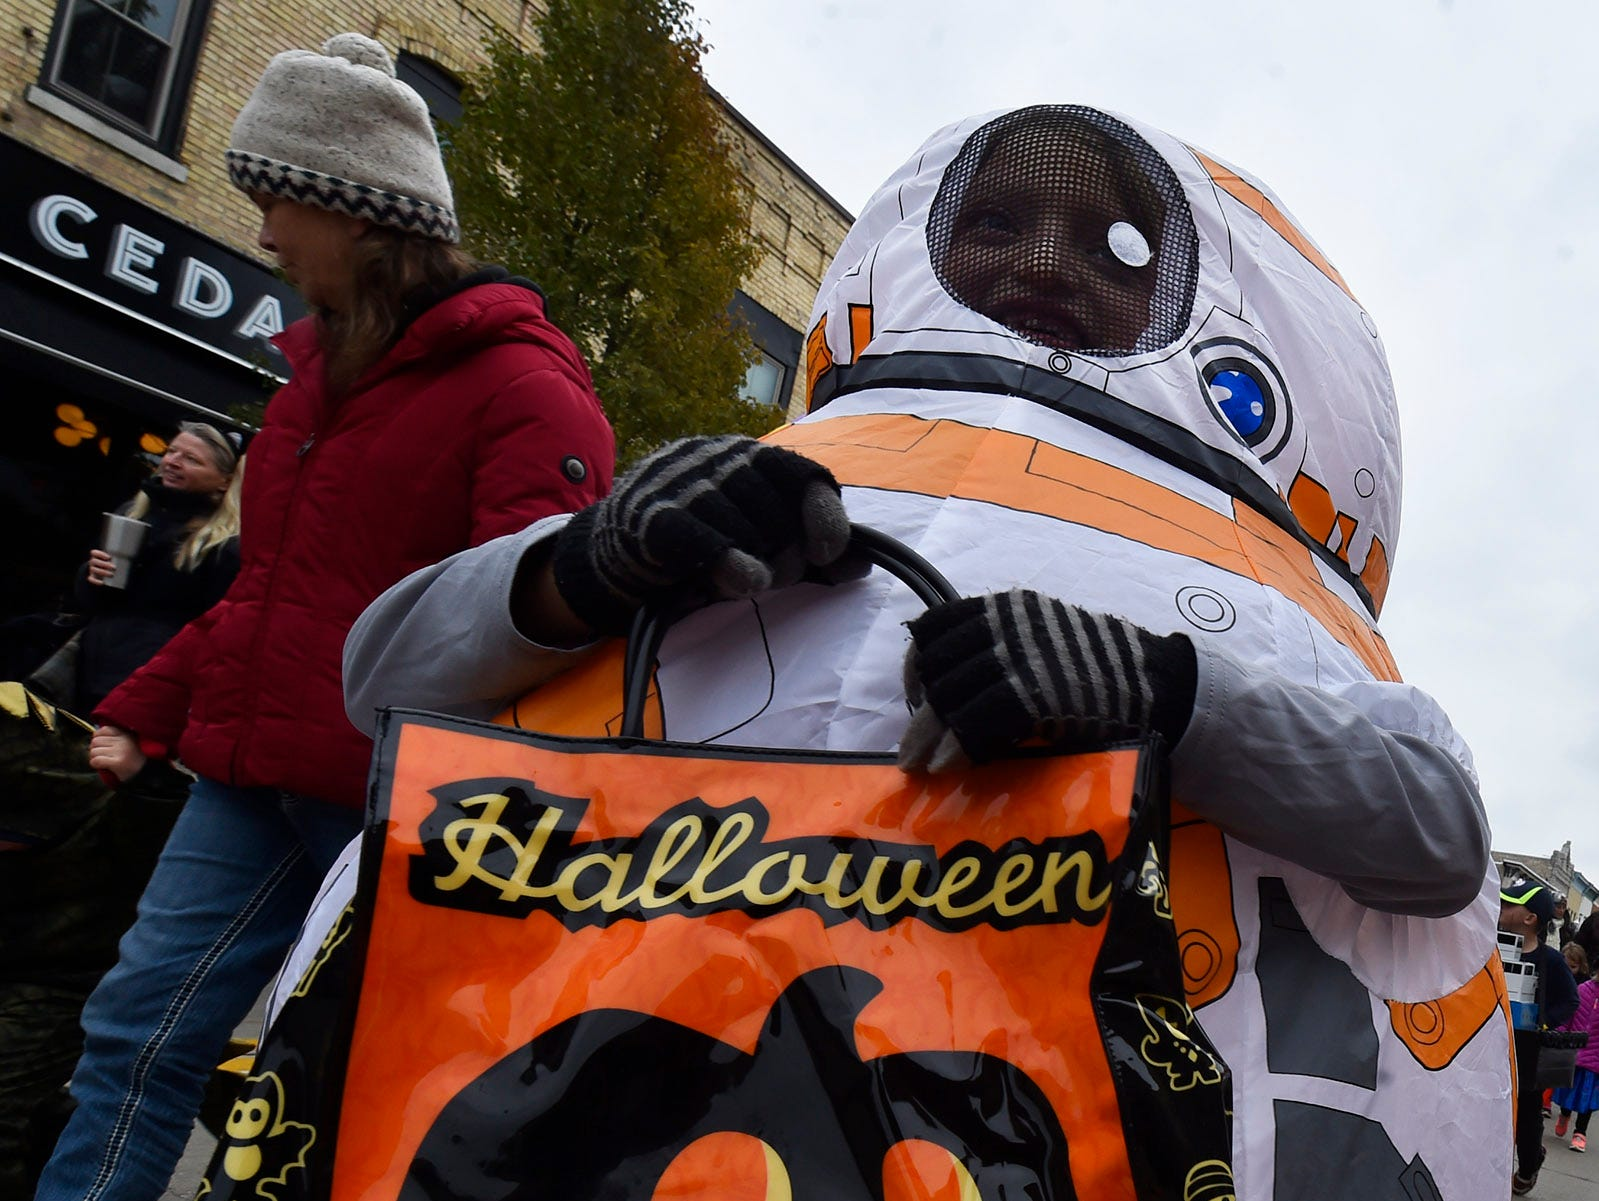 Hannah Denil is Star Wars character BB-8 at Thrills on Third costume parade on Saturday, Oct. 27, 2018, in Sturgeon Bay. Tina M. Gohr/USA TODAY NETWORK-Wisconsin